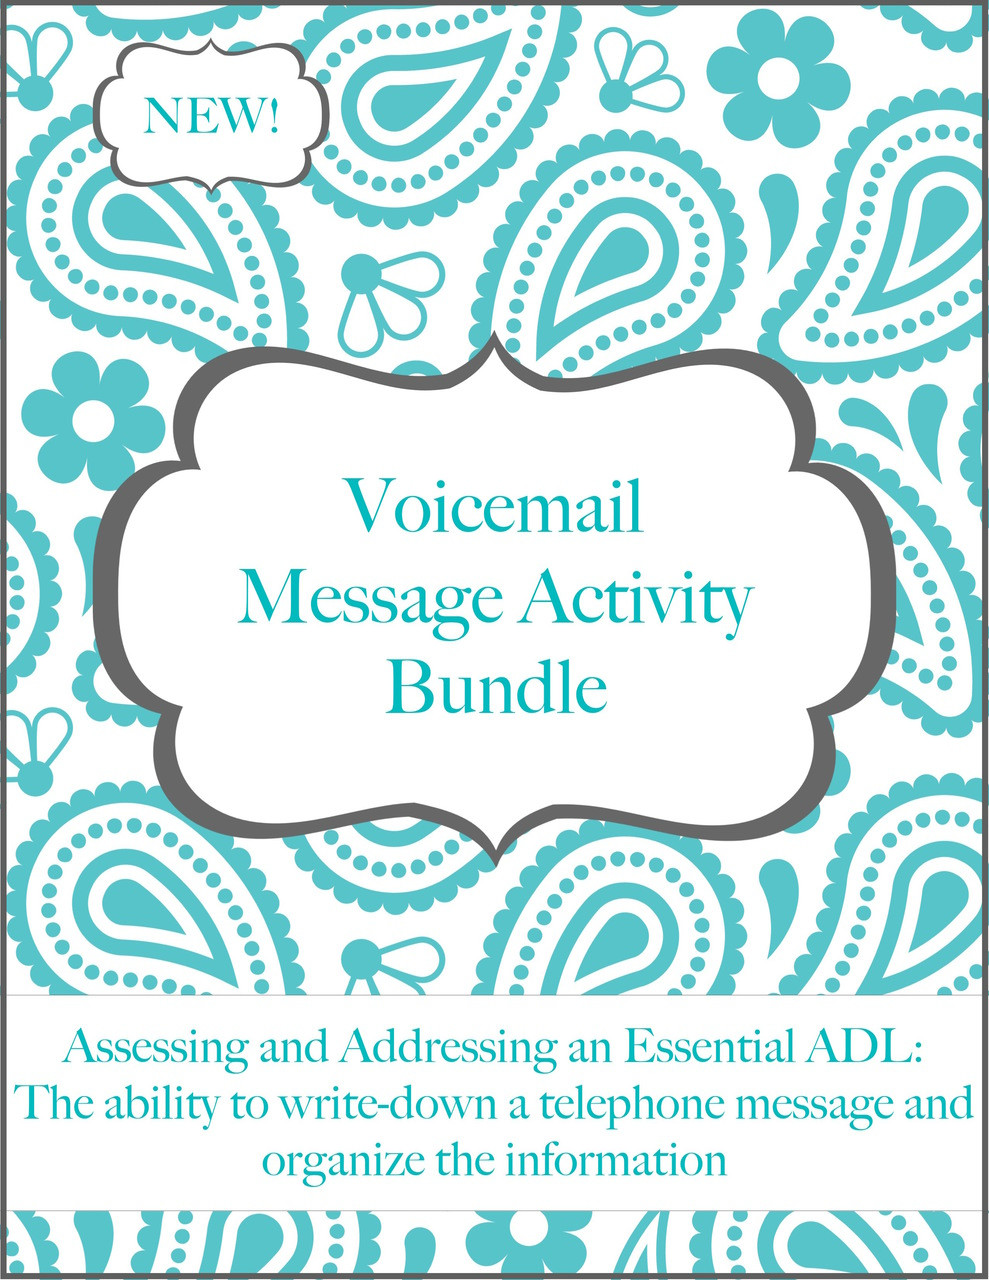 Voicemail Message Activity